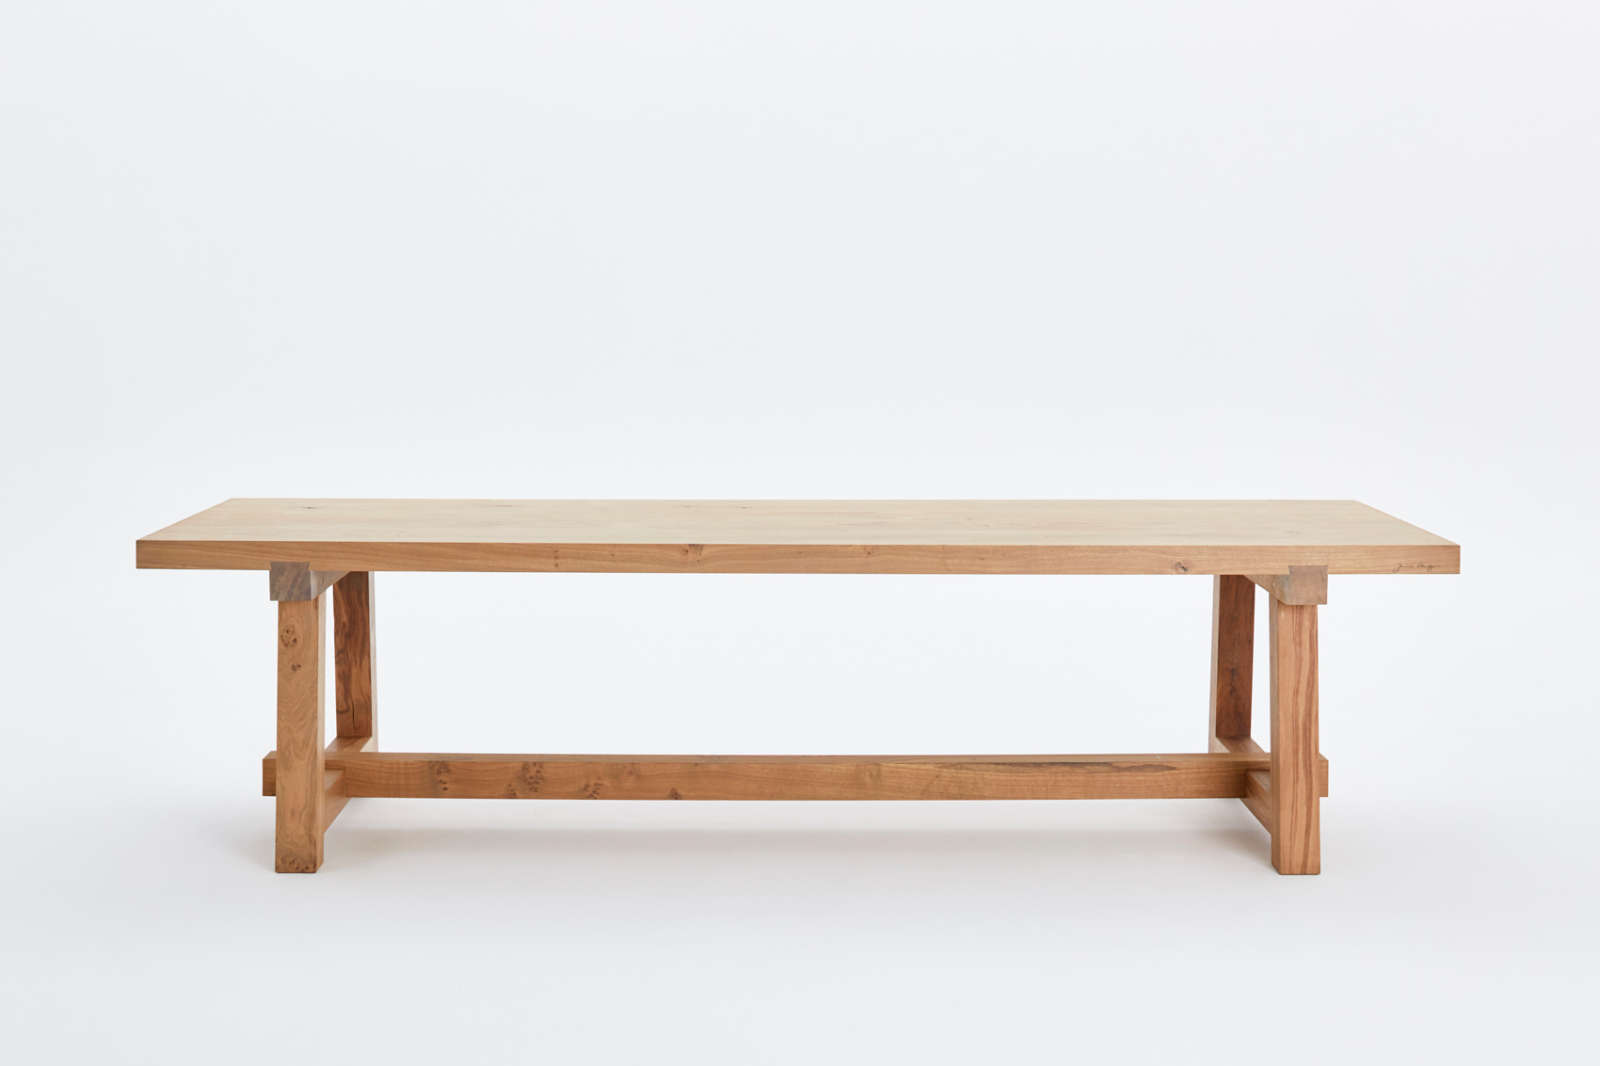 French oak harvest table